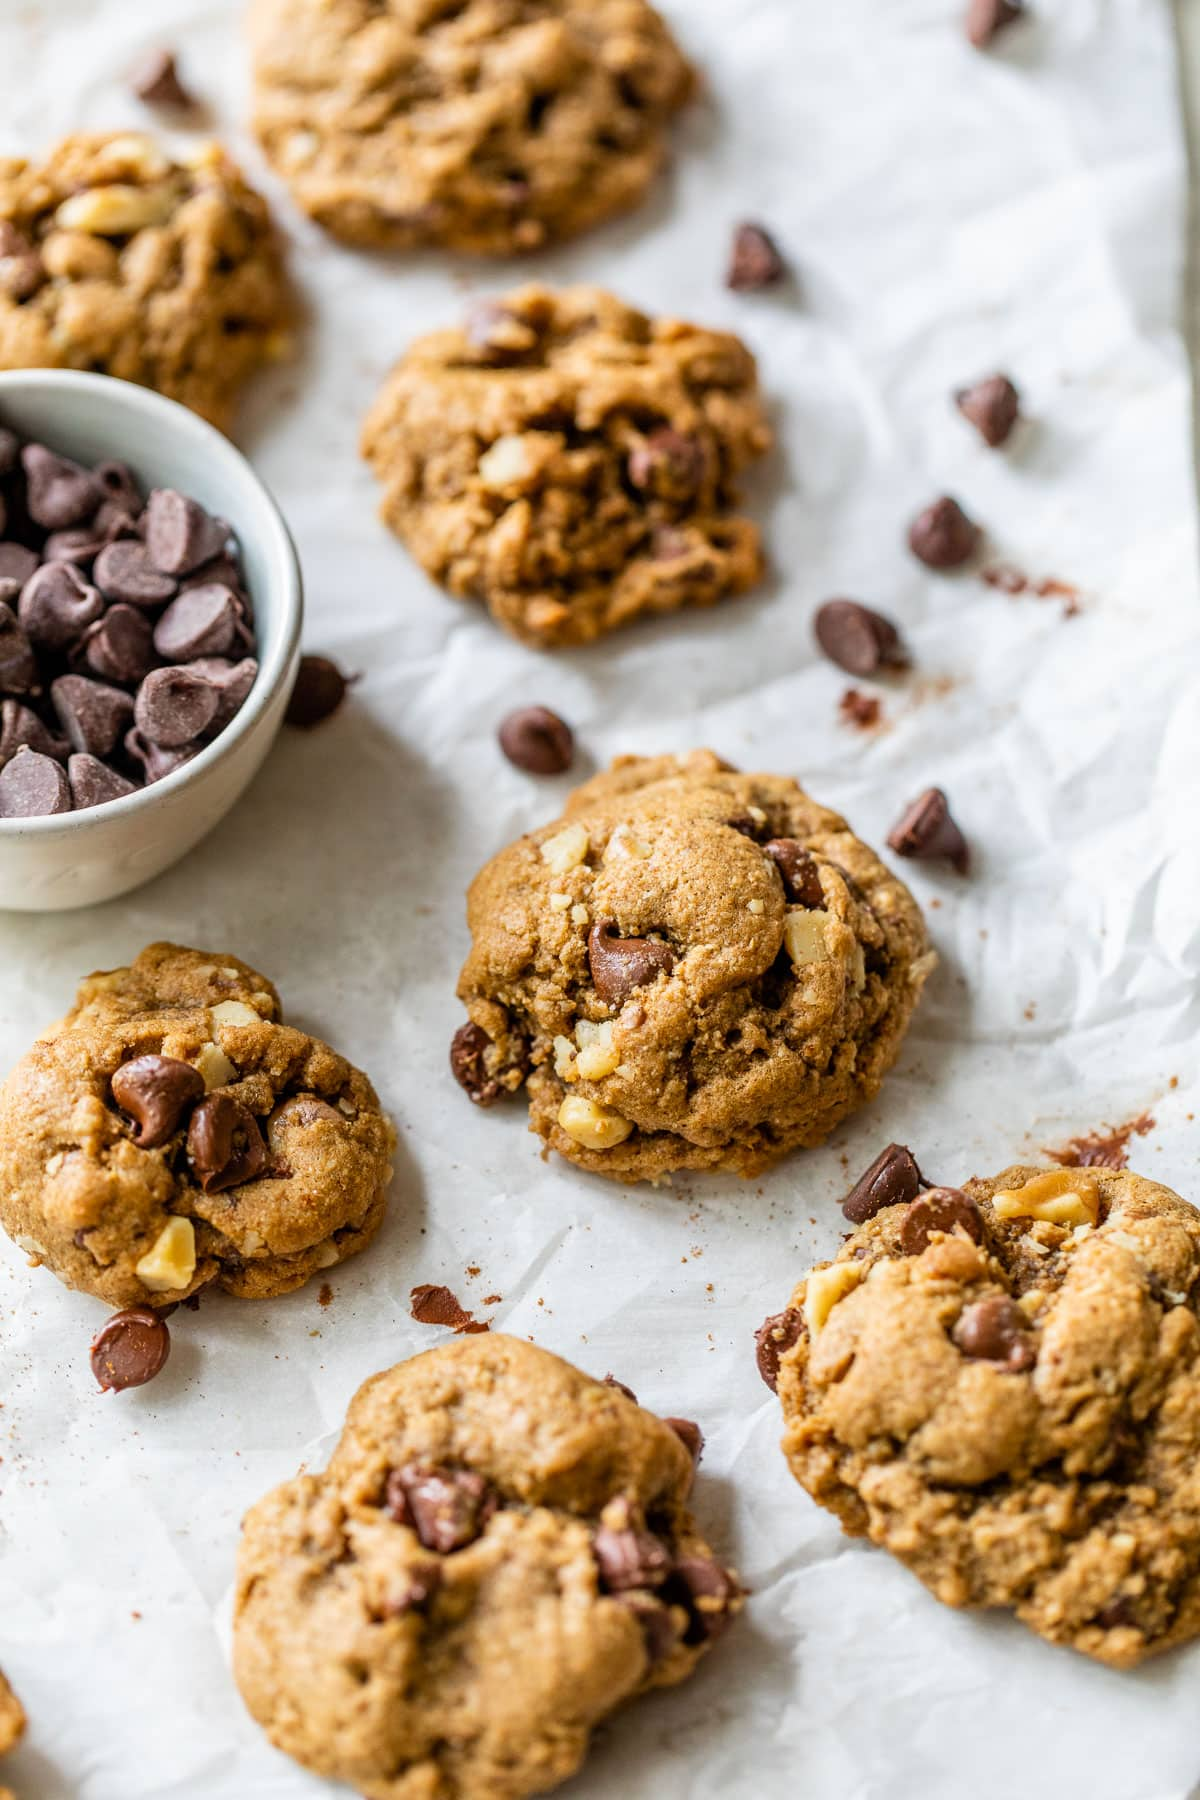 Whole Wheat Walnut Chocolate Chip Cookies with espresso, dark chocolate and cinnamon.